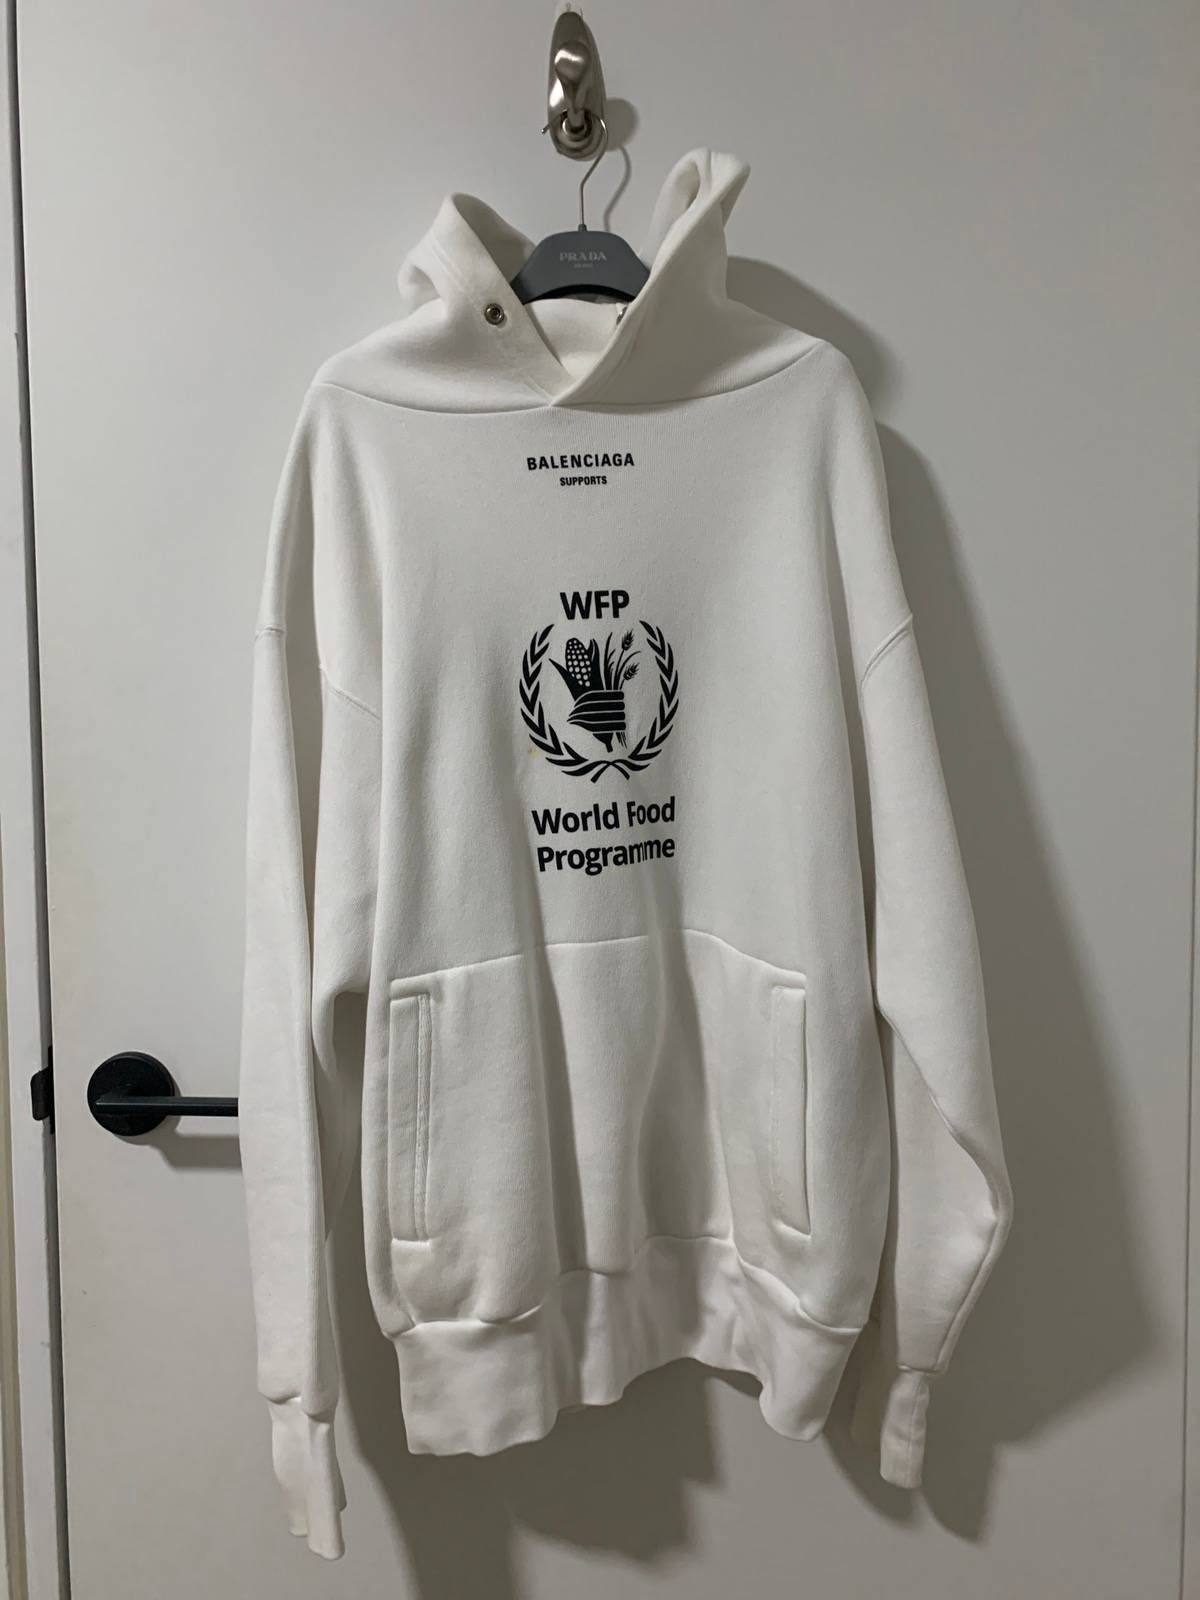 Balenciaga Balenciaga World Food Programme Hoodie White Grailed